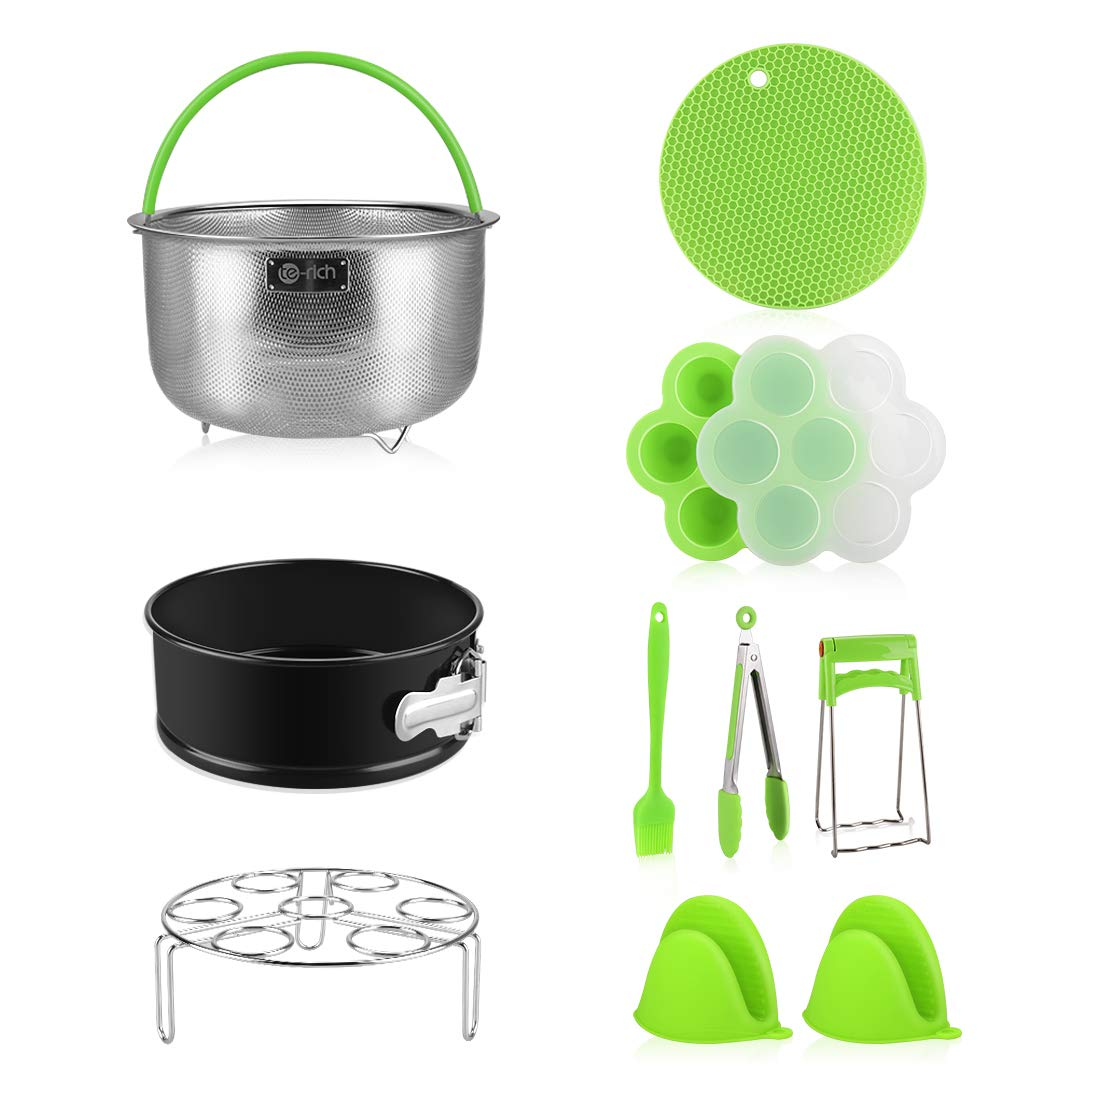 Pressure Cooker Accessories, Fit Insta Pot Instapot 6, 8 Qt - Stainless Steel Steamer Basket/Springform Pan/Silicone Egg Bites Mold/Egg Rack Trivet - 10 Pcs Accessory Set Compatible with Instant Pot